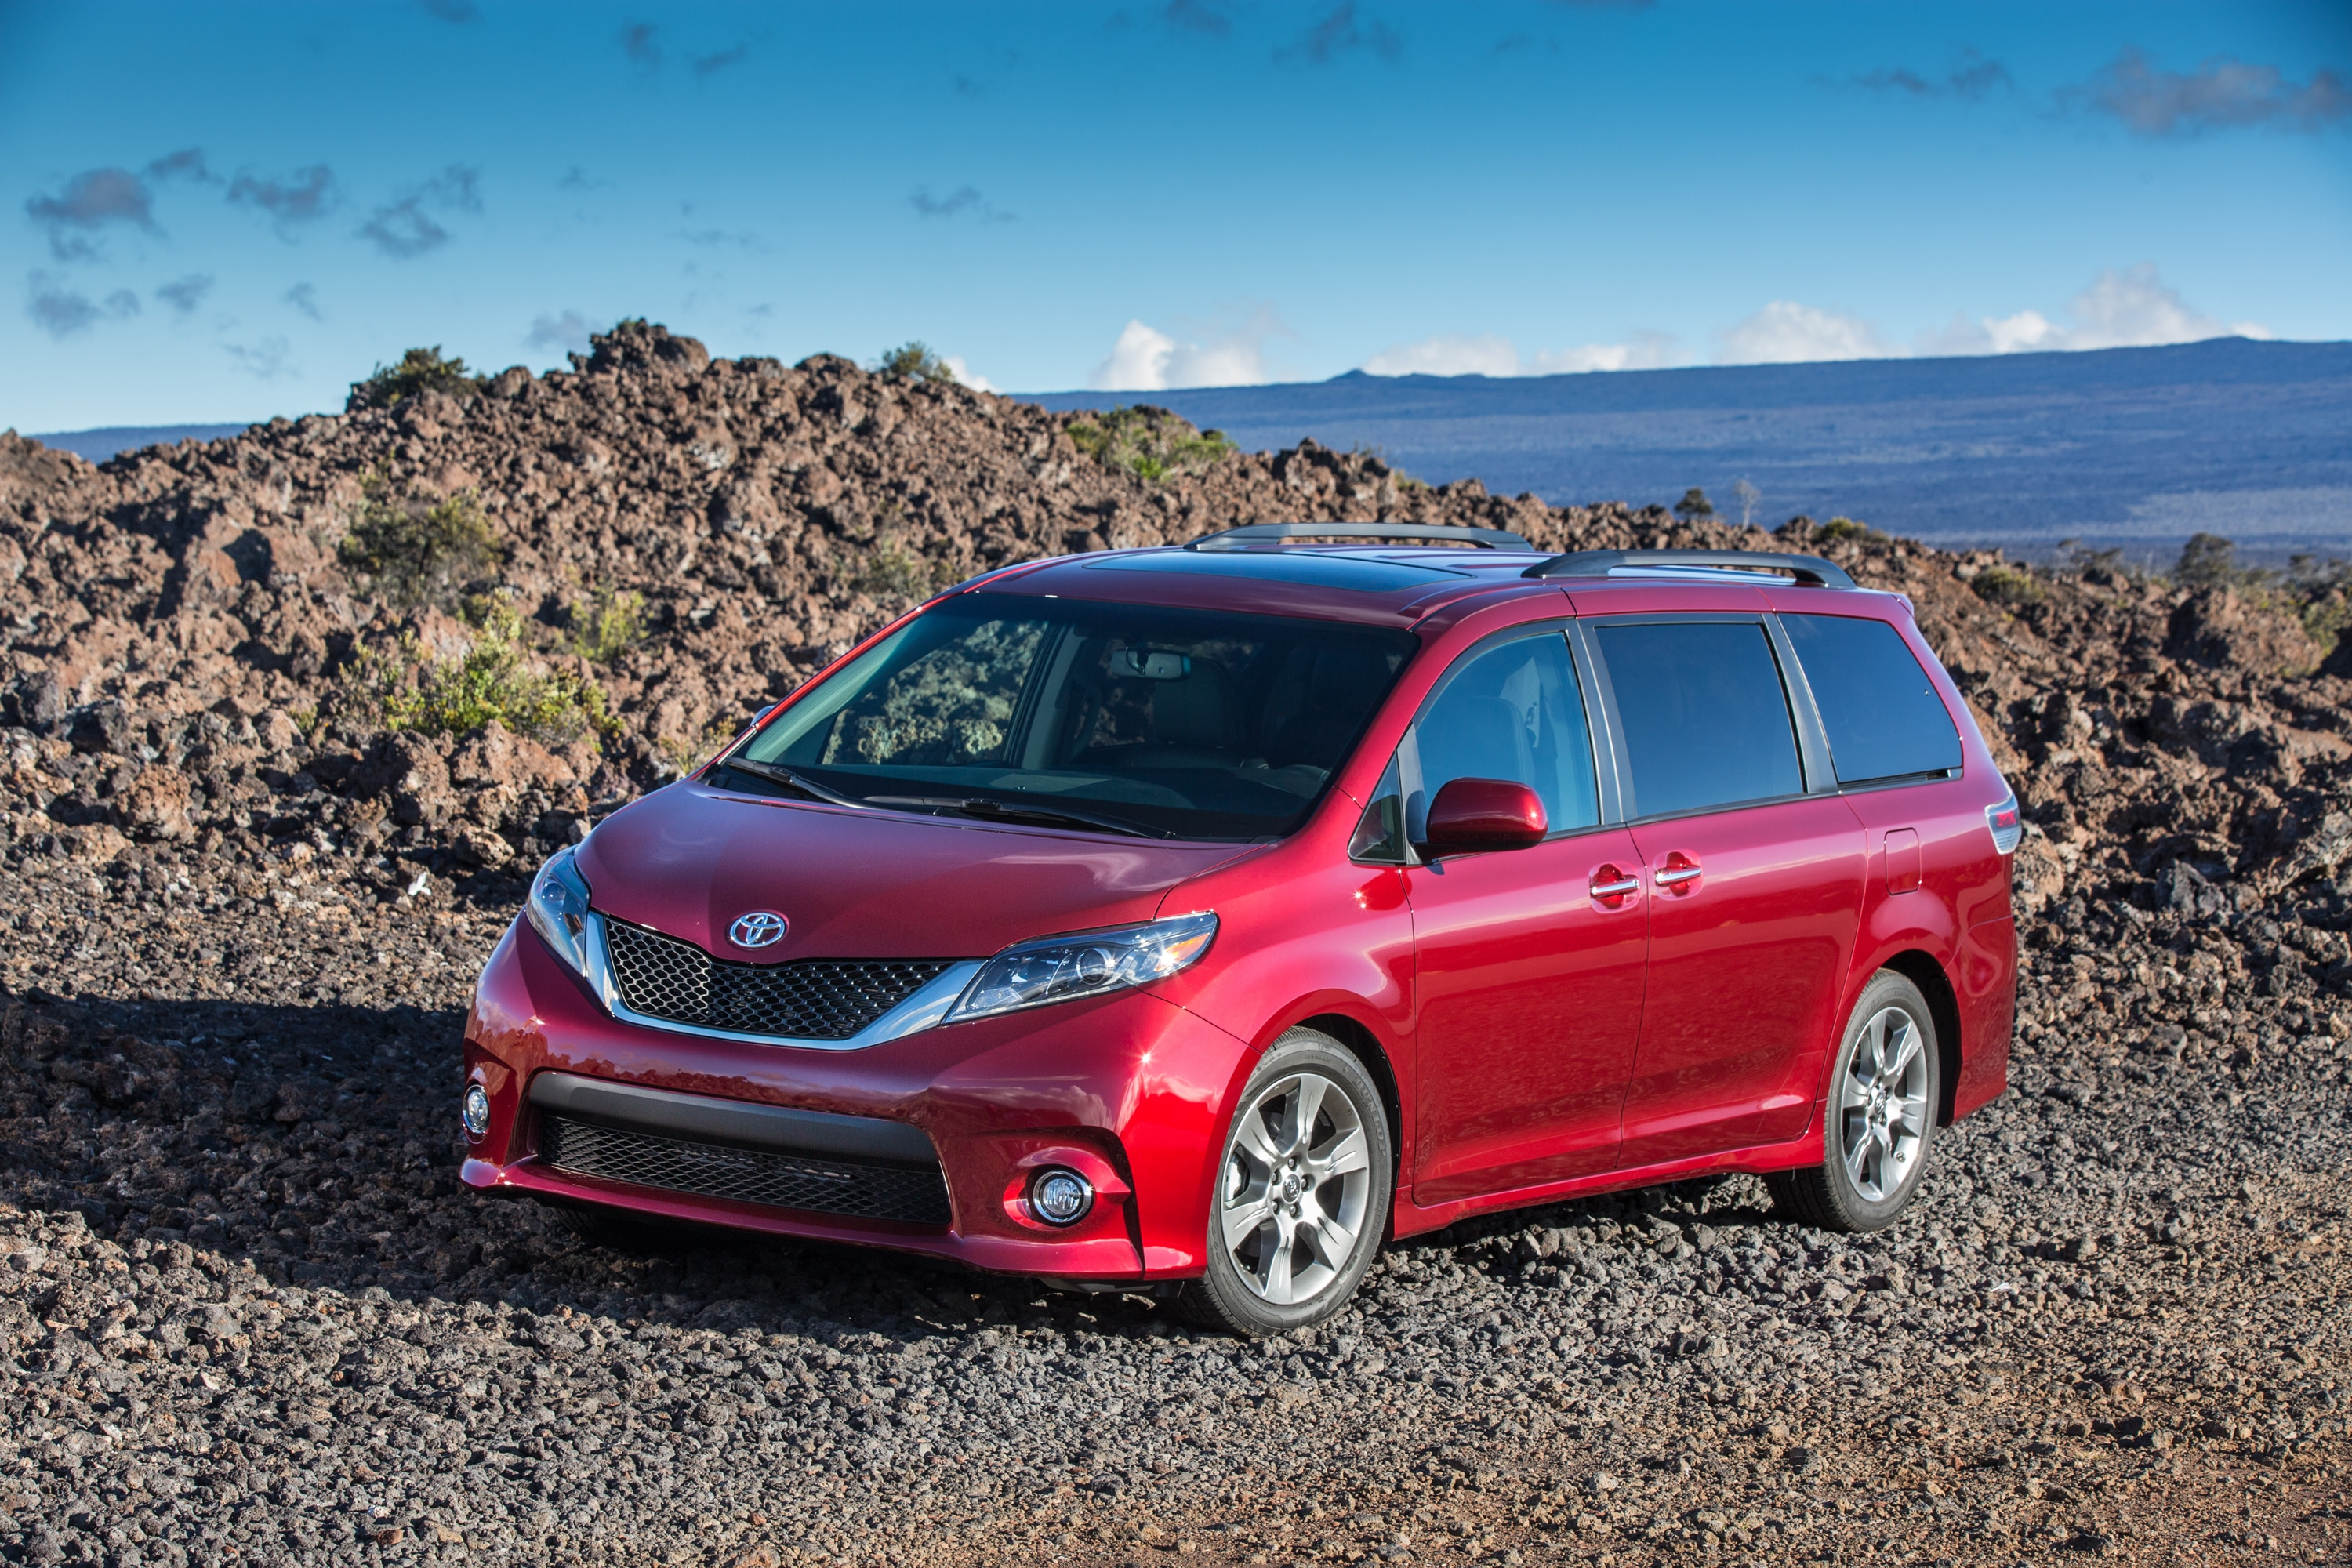 Sienna Vs Odyssey >> Toyota Creates the Ultimate Off-Road Sienna Minivan Monster